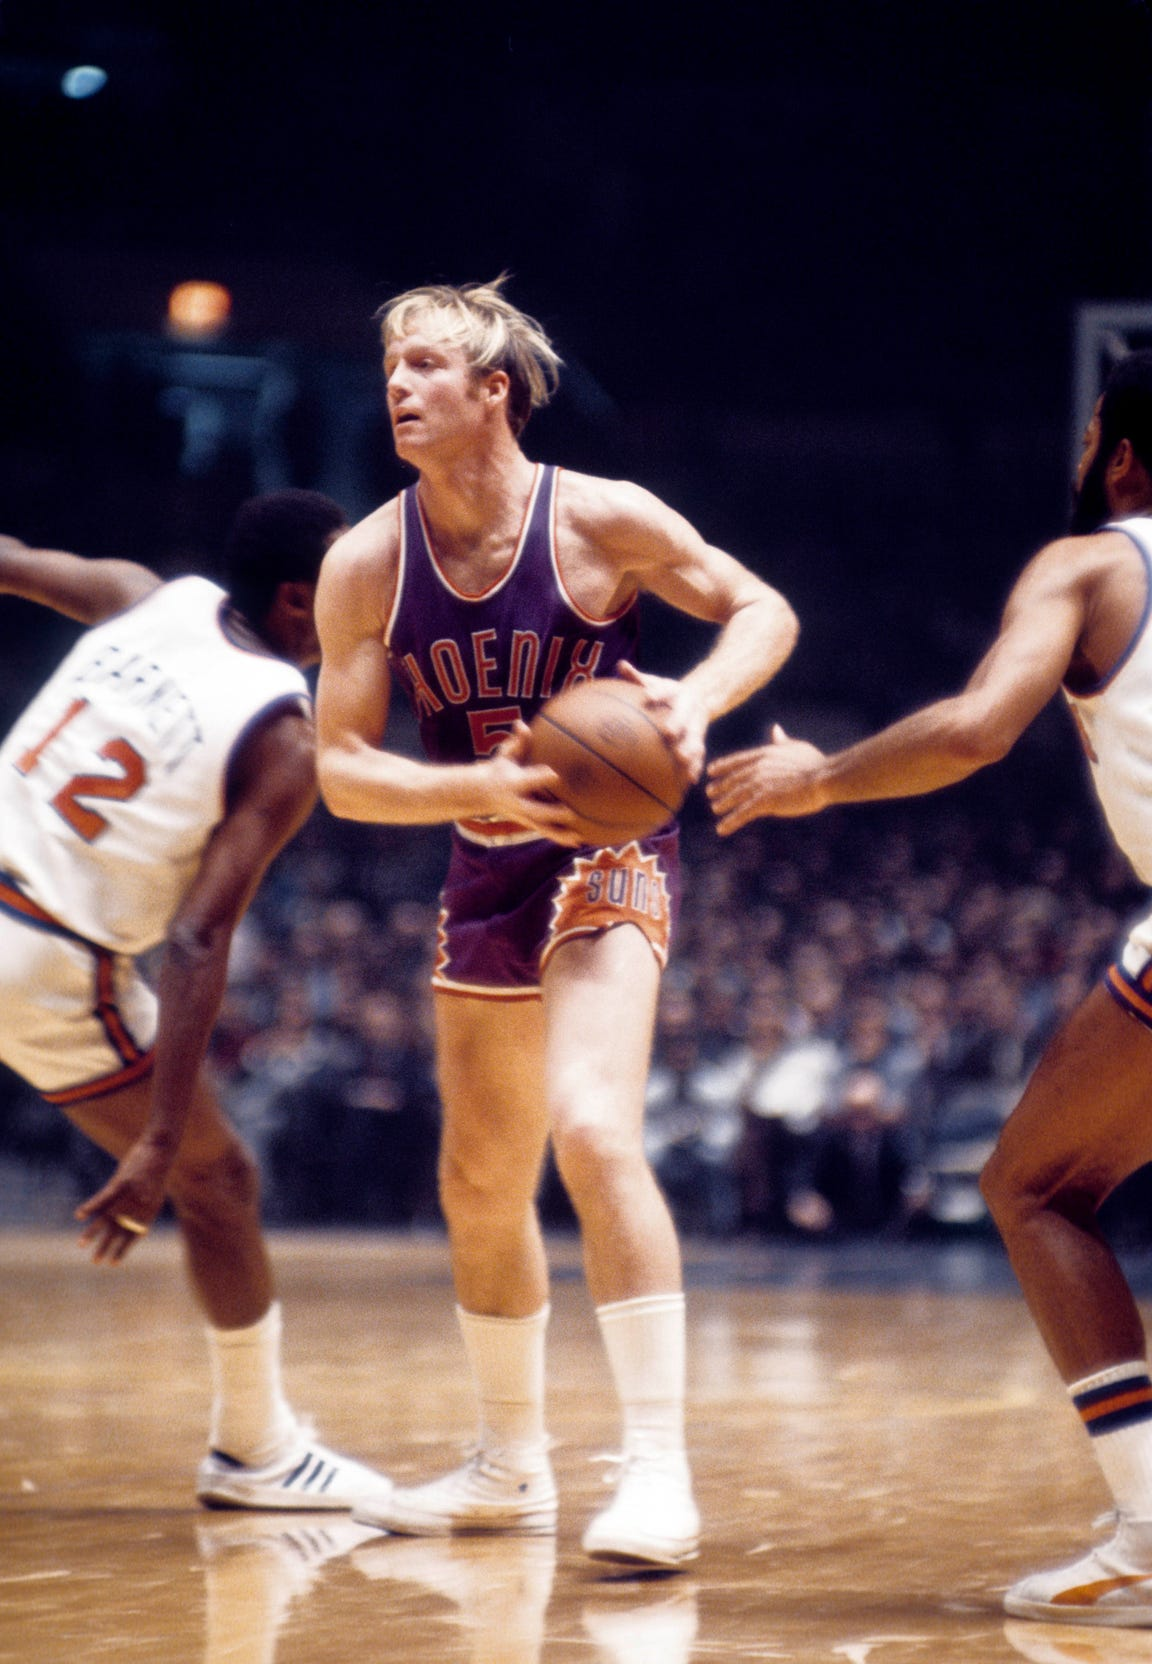 Suns guard Dick Van Arsdale in action against the New York Knicks at Madison Square Garden in 1971.